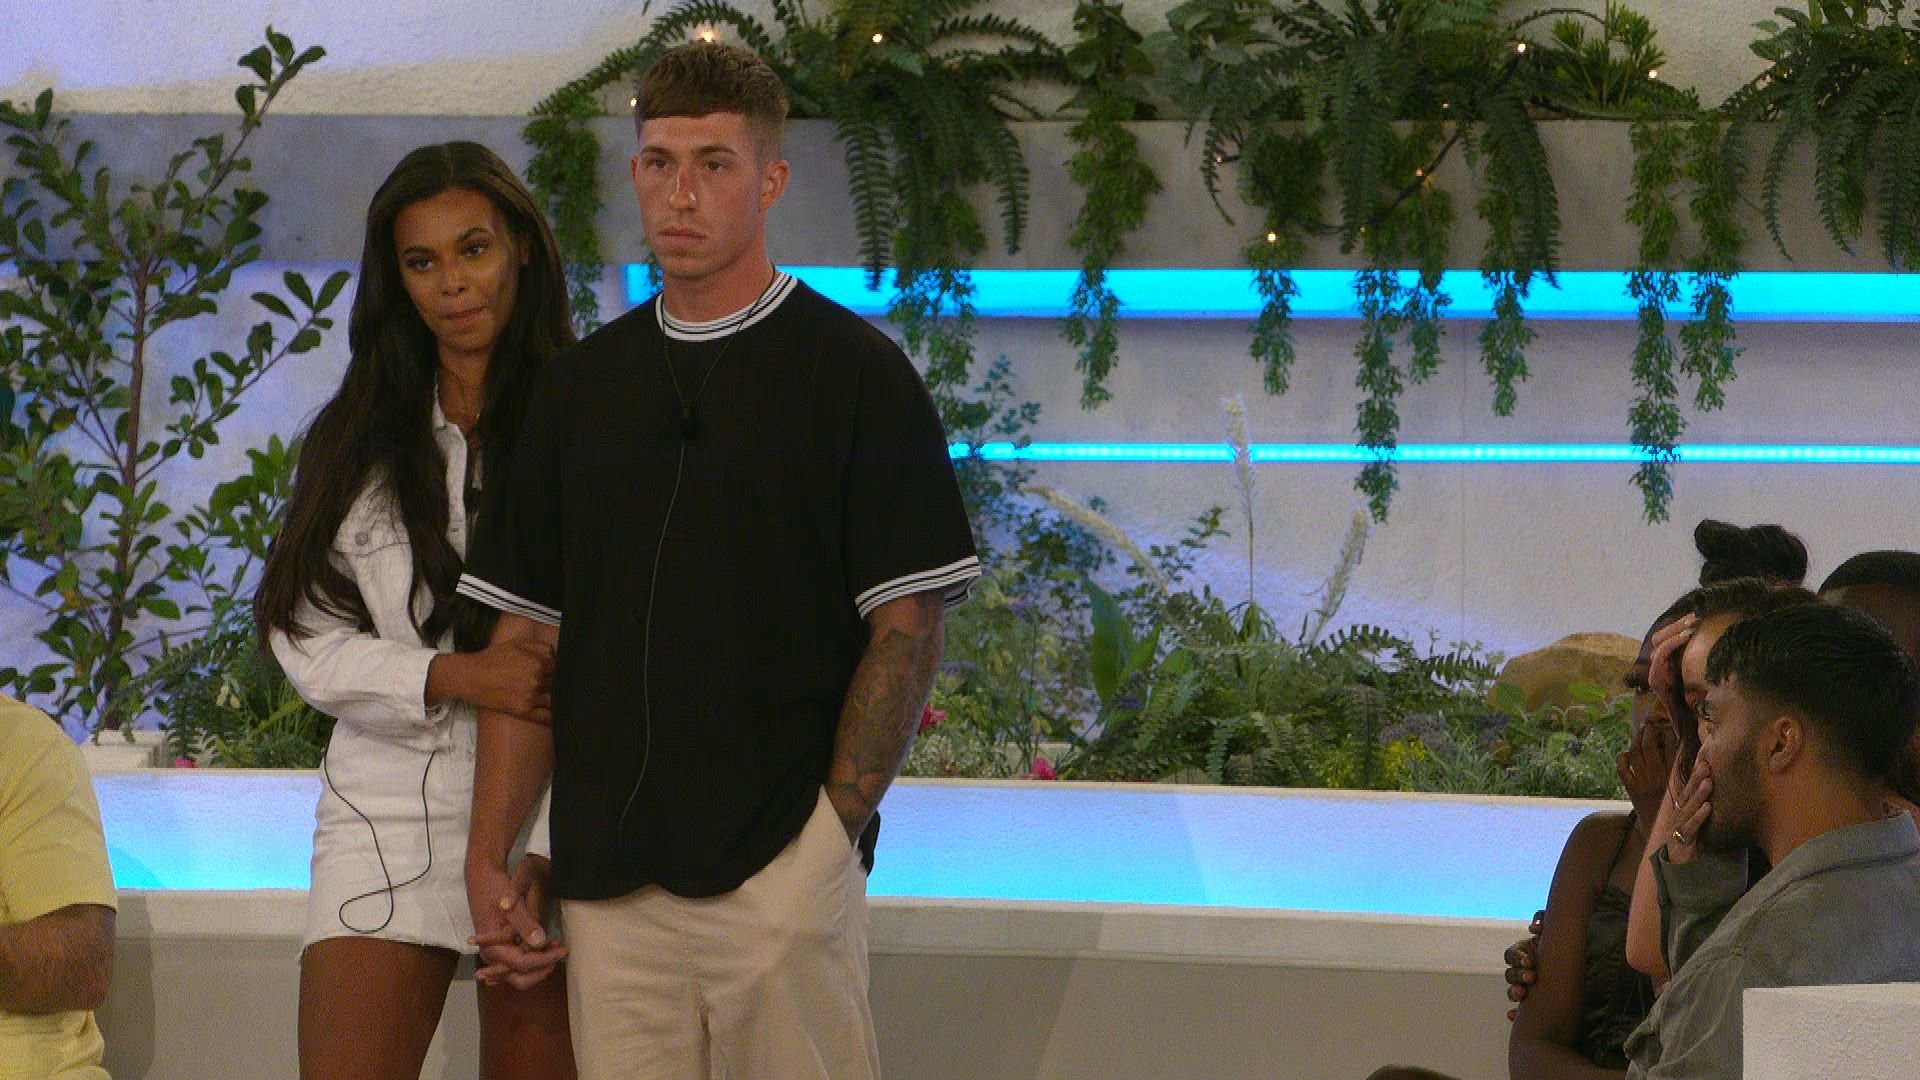 Love Island's dumped Islander reveals if they're upset their partner didn't leave too